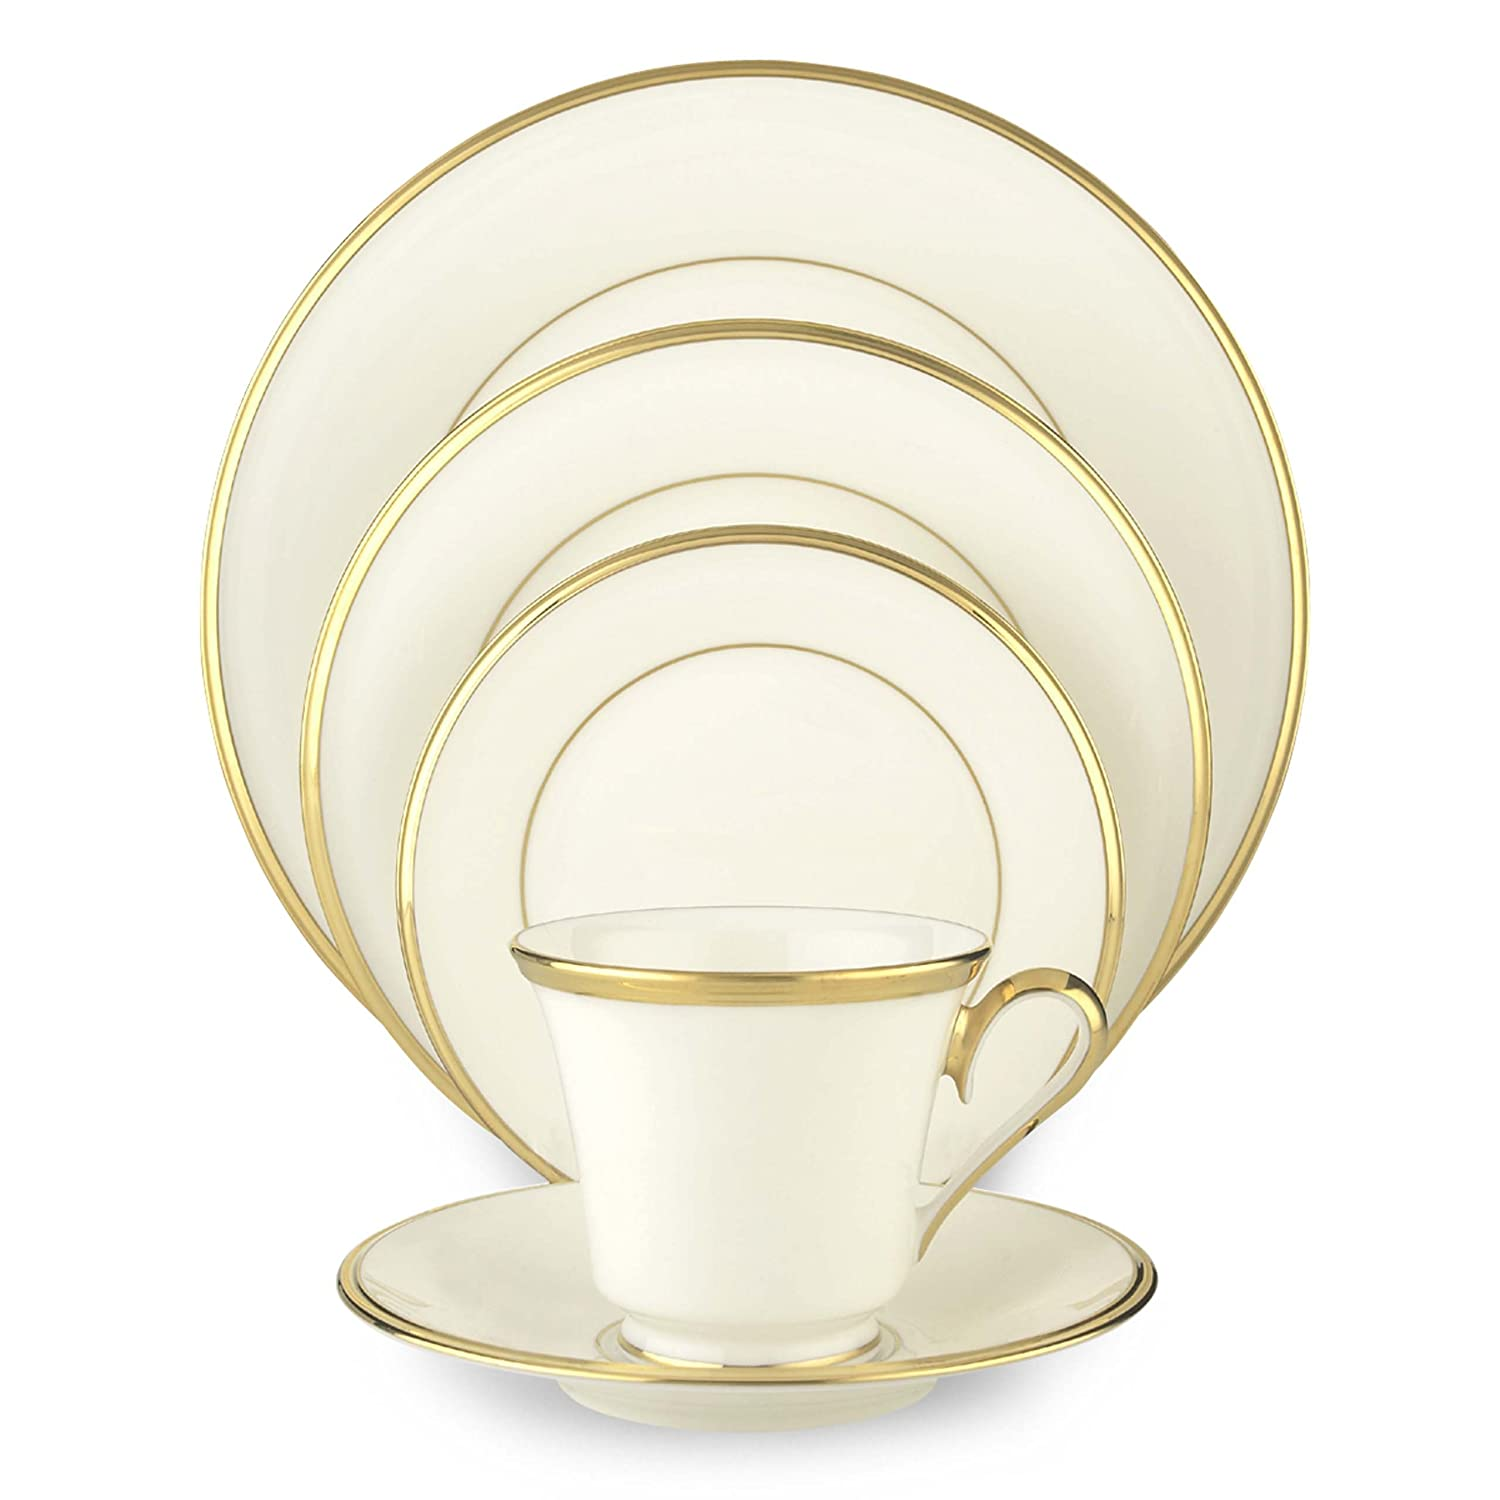 Lenox Eternal White Gold-Banded Fine Bone China 5-Piece Place Setting, Service for 1